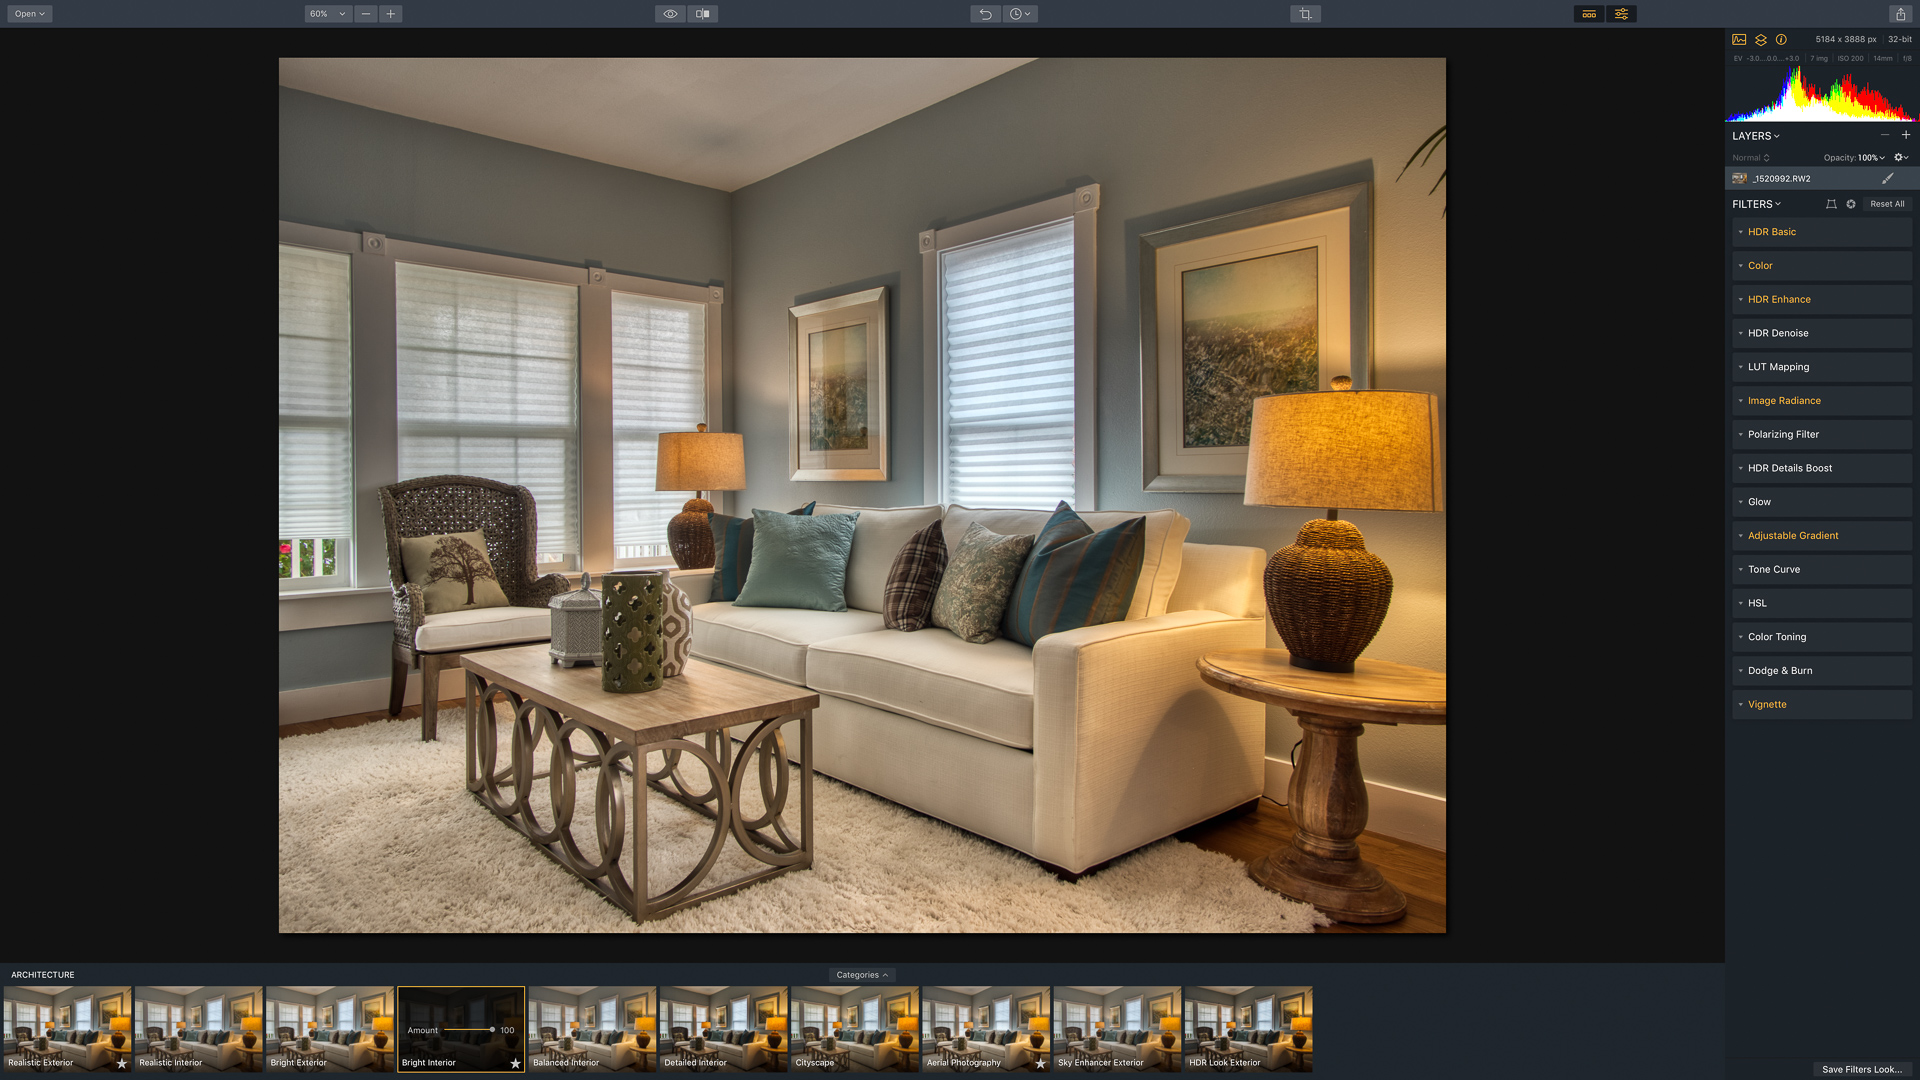 How to make real estate interiors with HDR in 9 steps